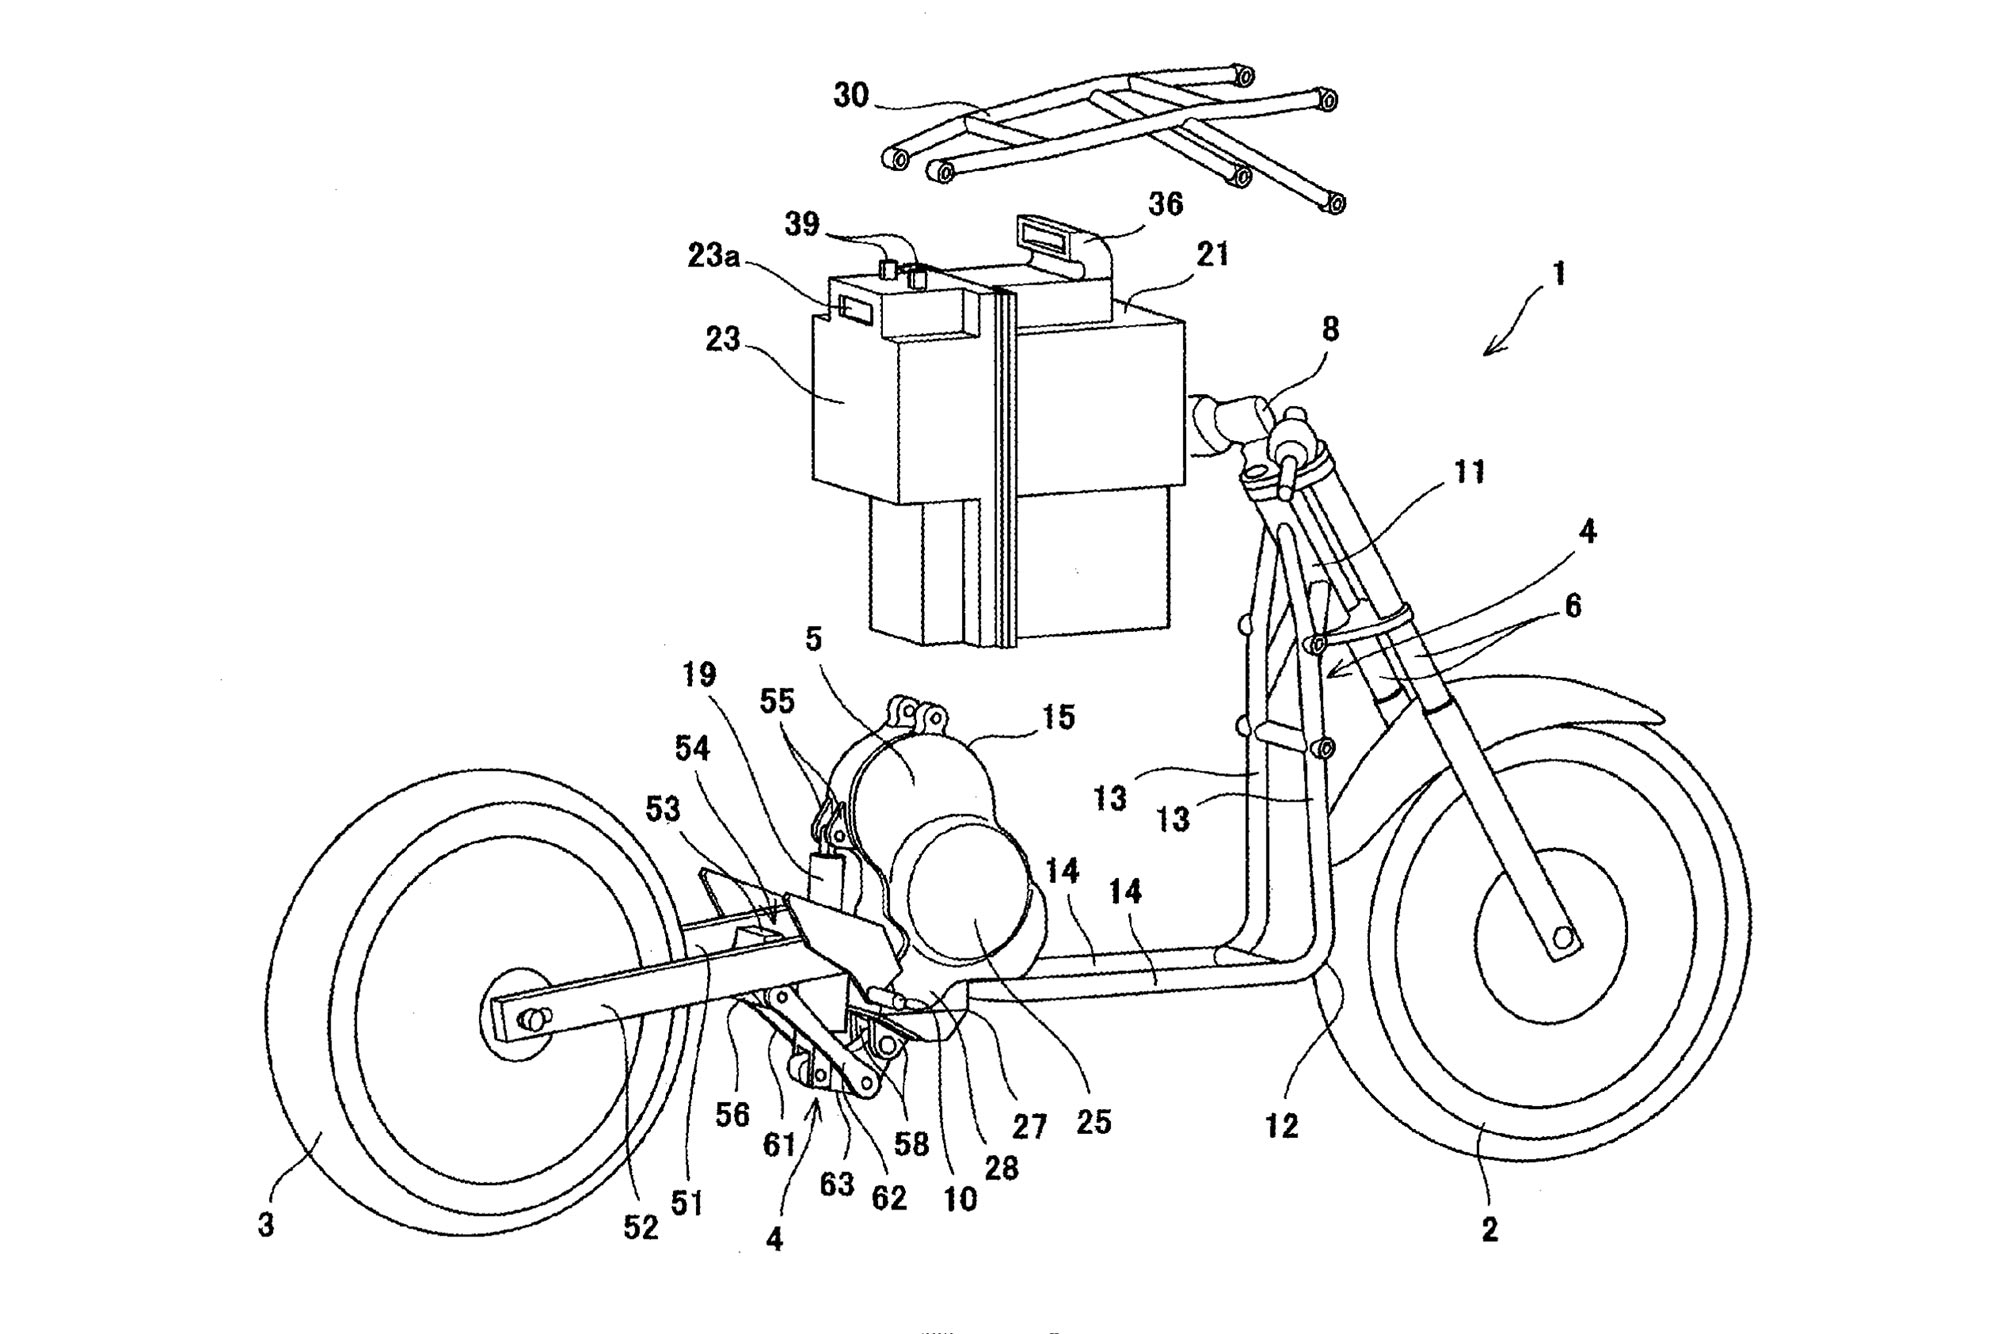 Kawasaki Applies For Electric Motorcycle Patent